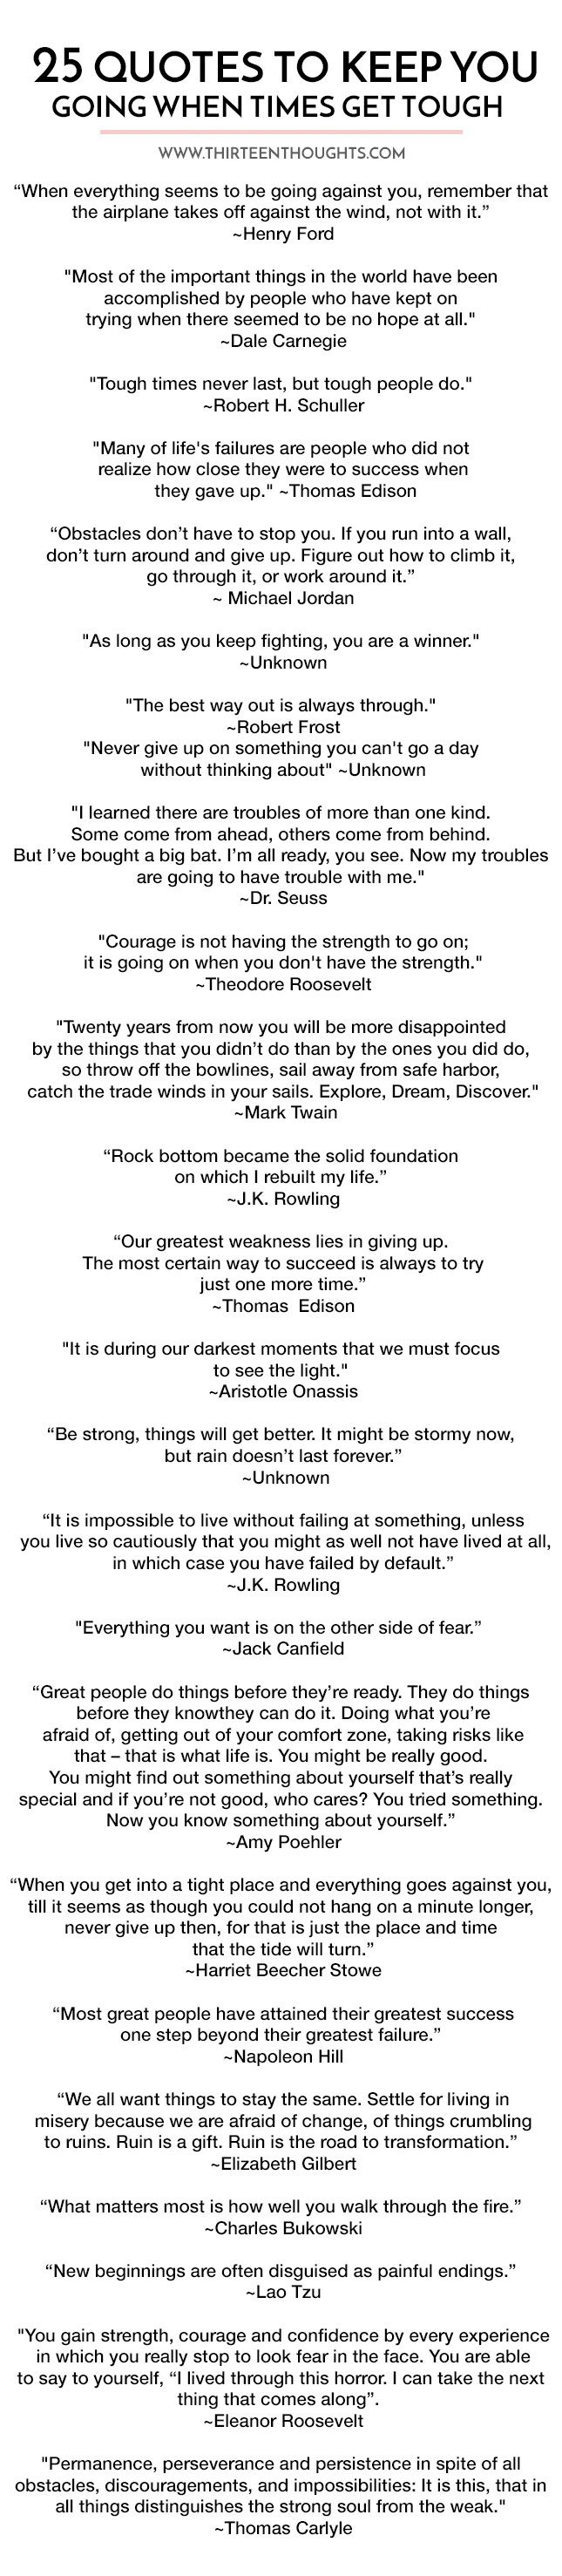 25 Quotes to Keep You Going When Times Get Tough ...